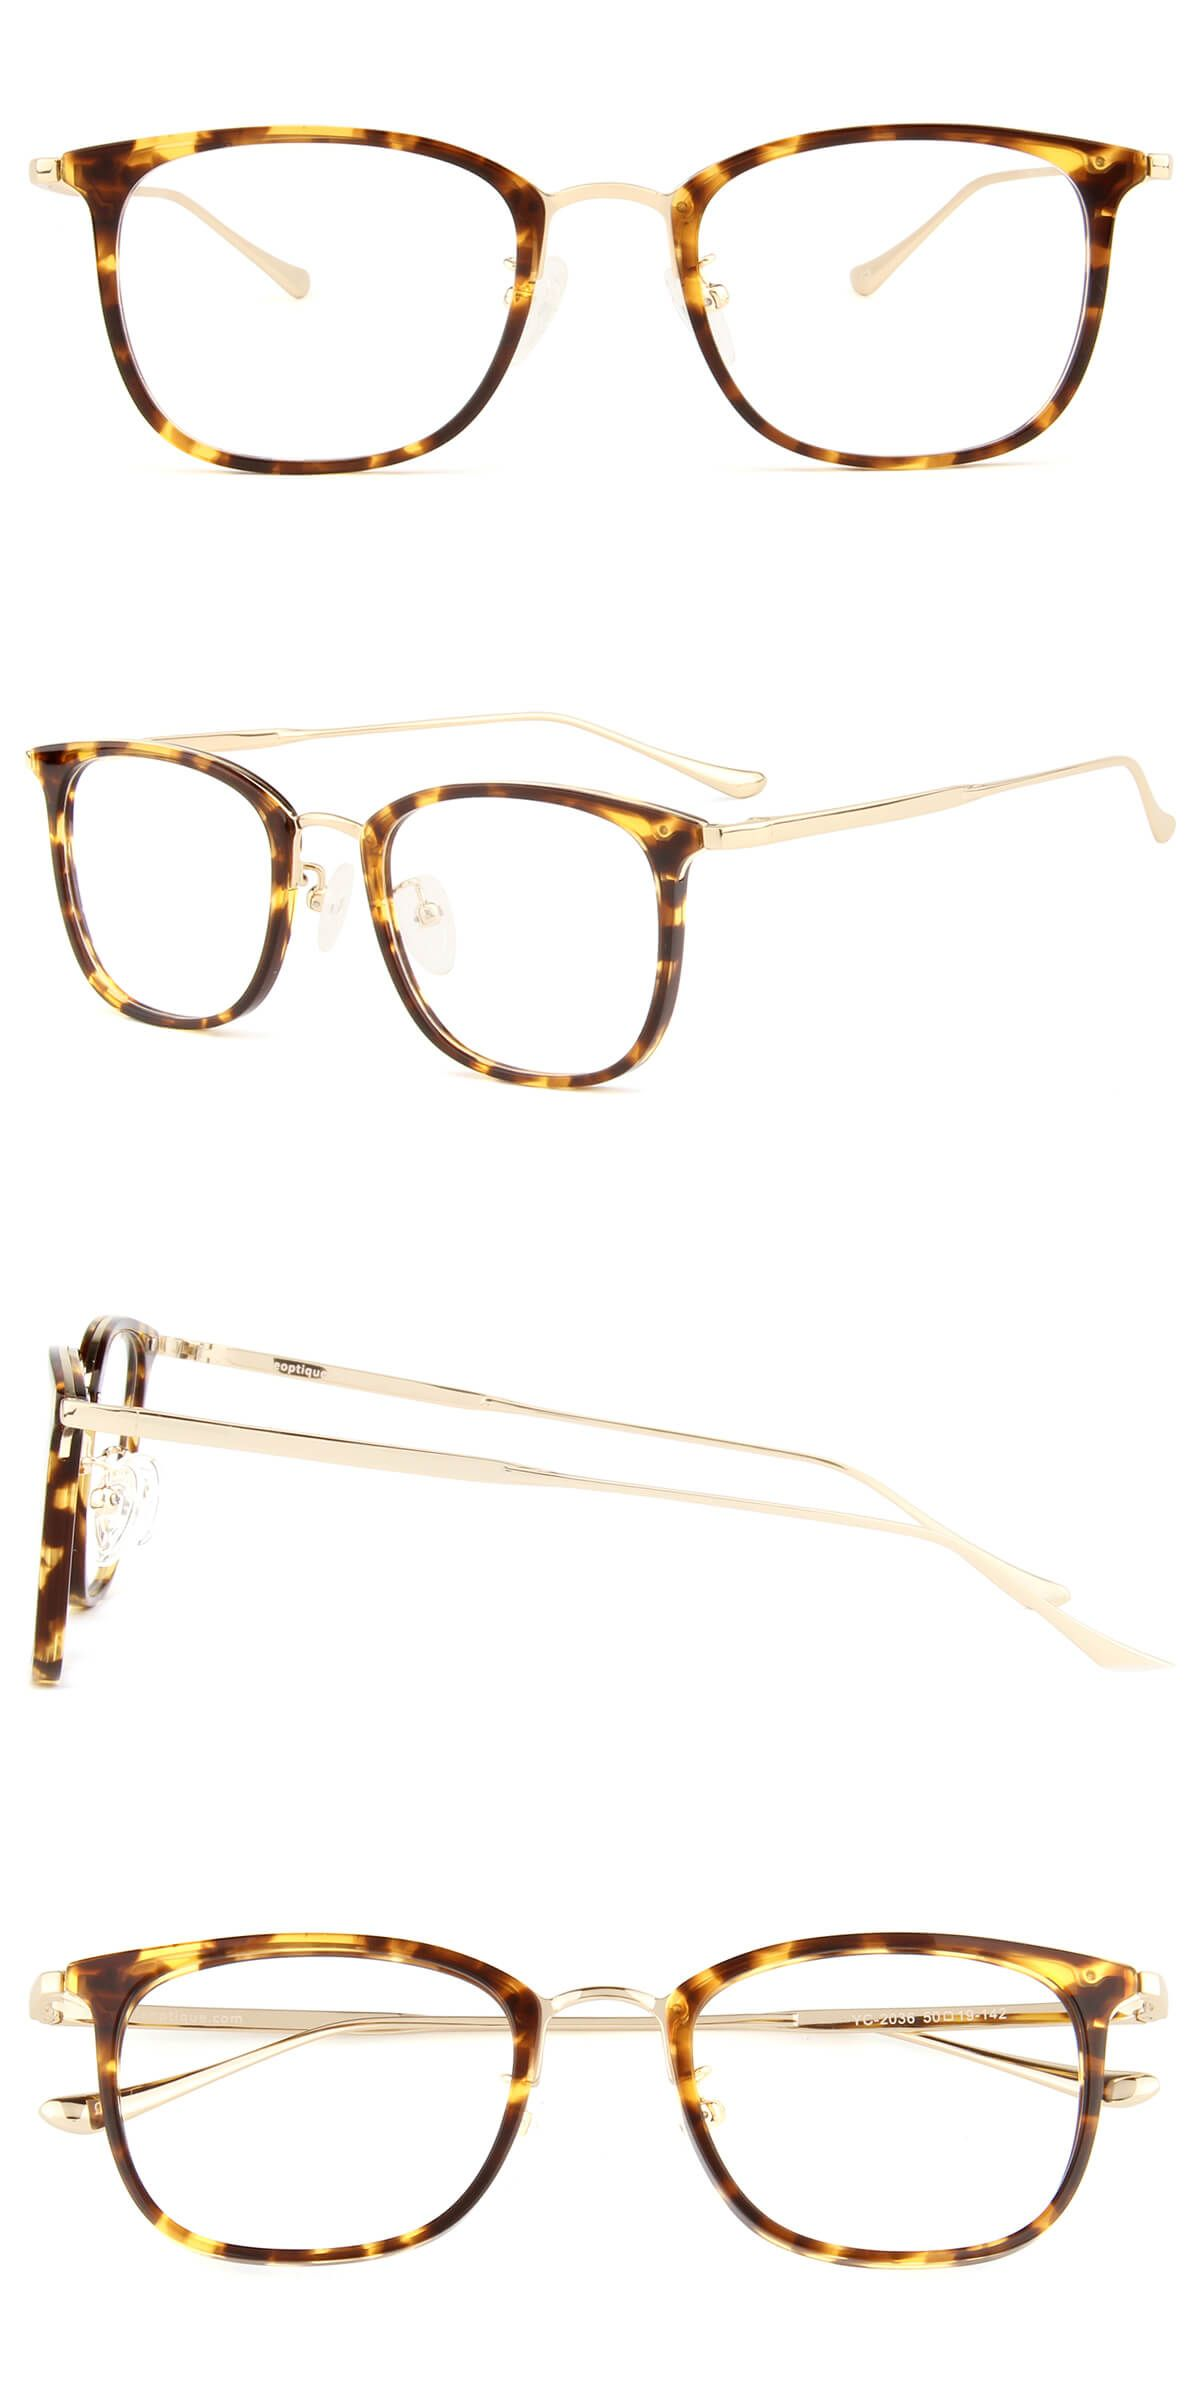 Yc2036 Tortoise With Images Oval Glasses Tortoise Eyeglasses